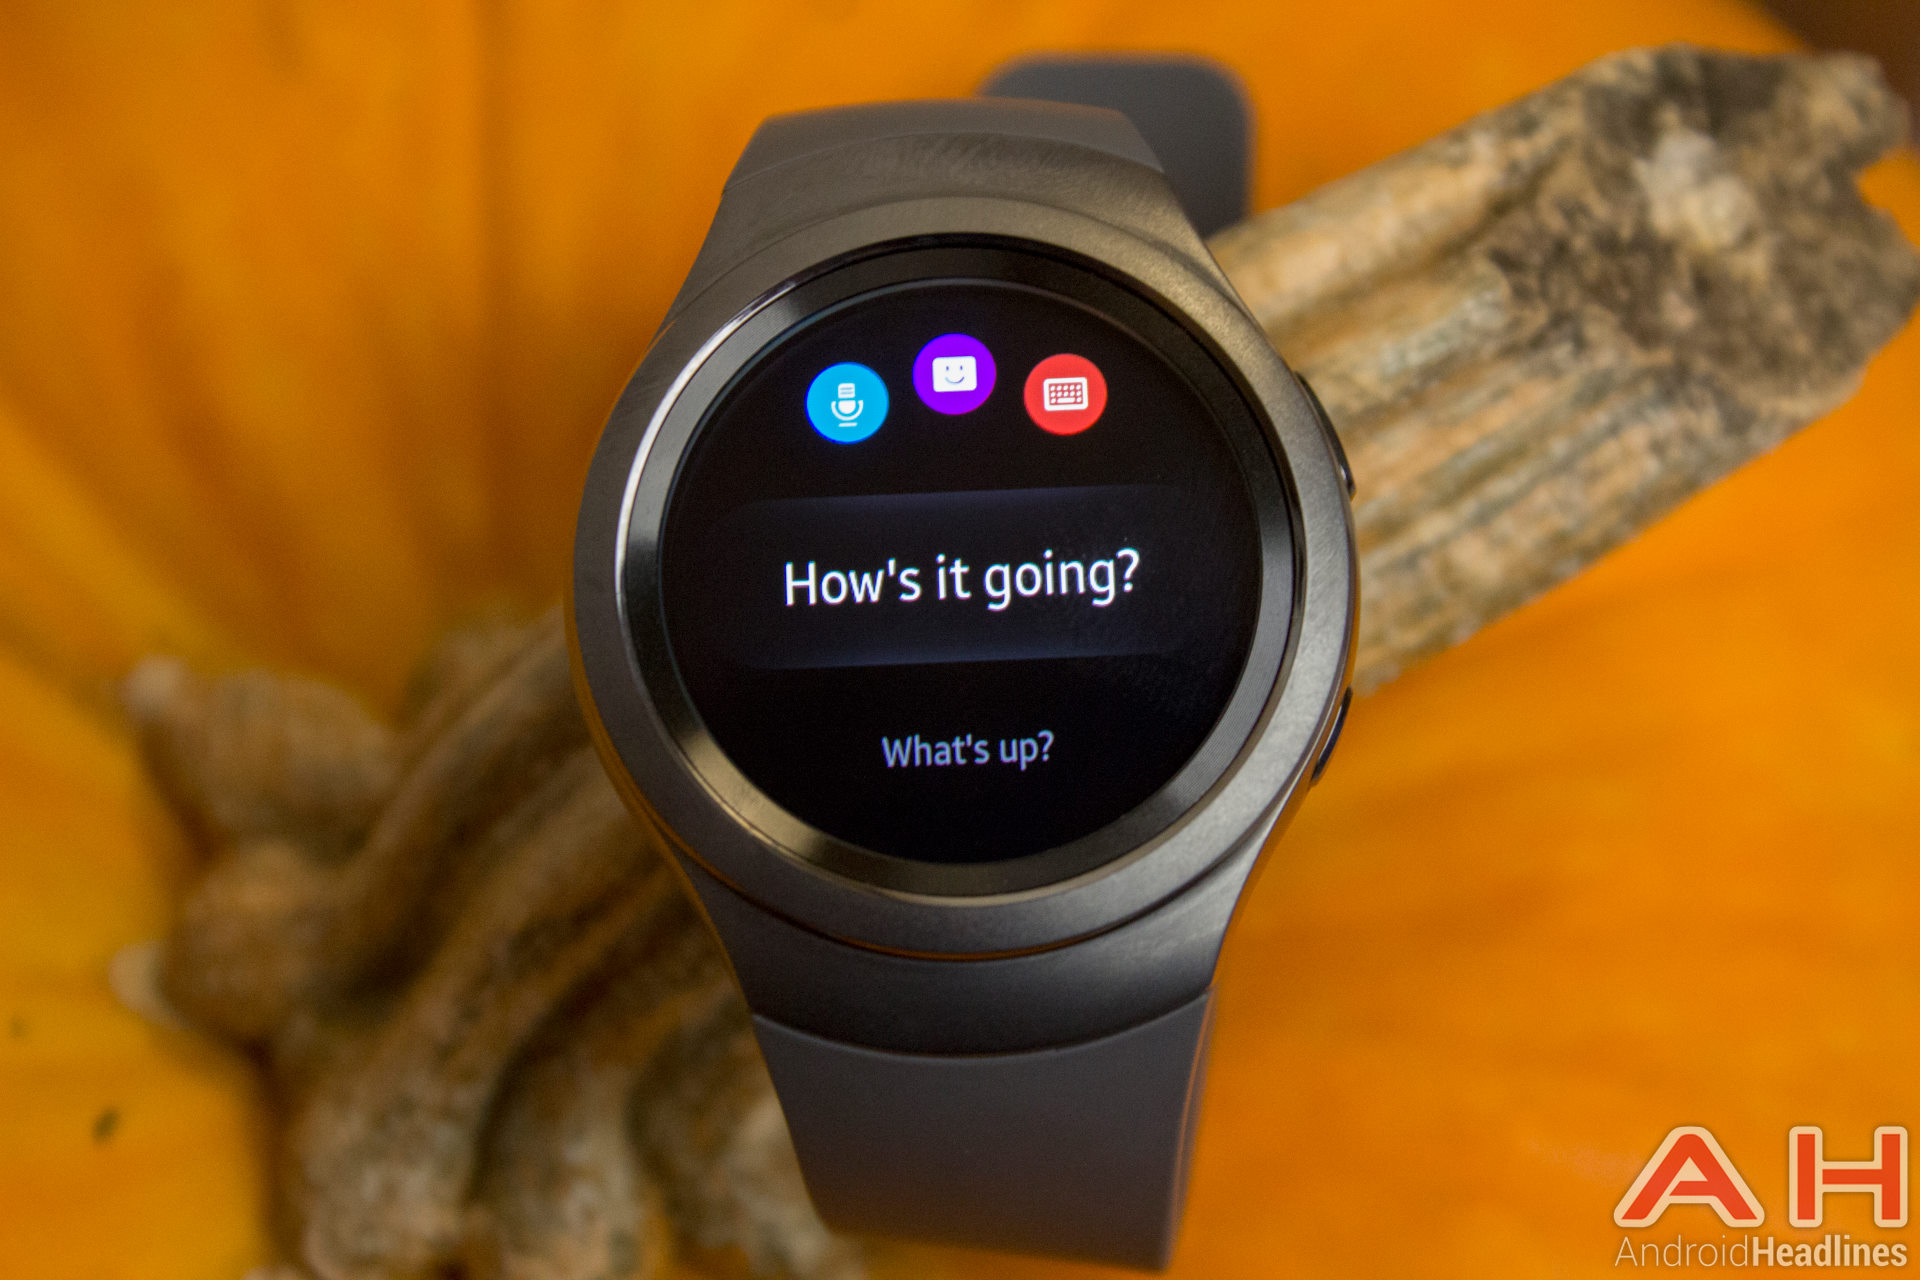 Samsung-Gear-S2-AH-message-1